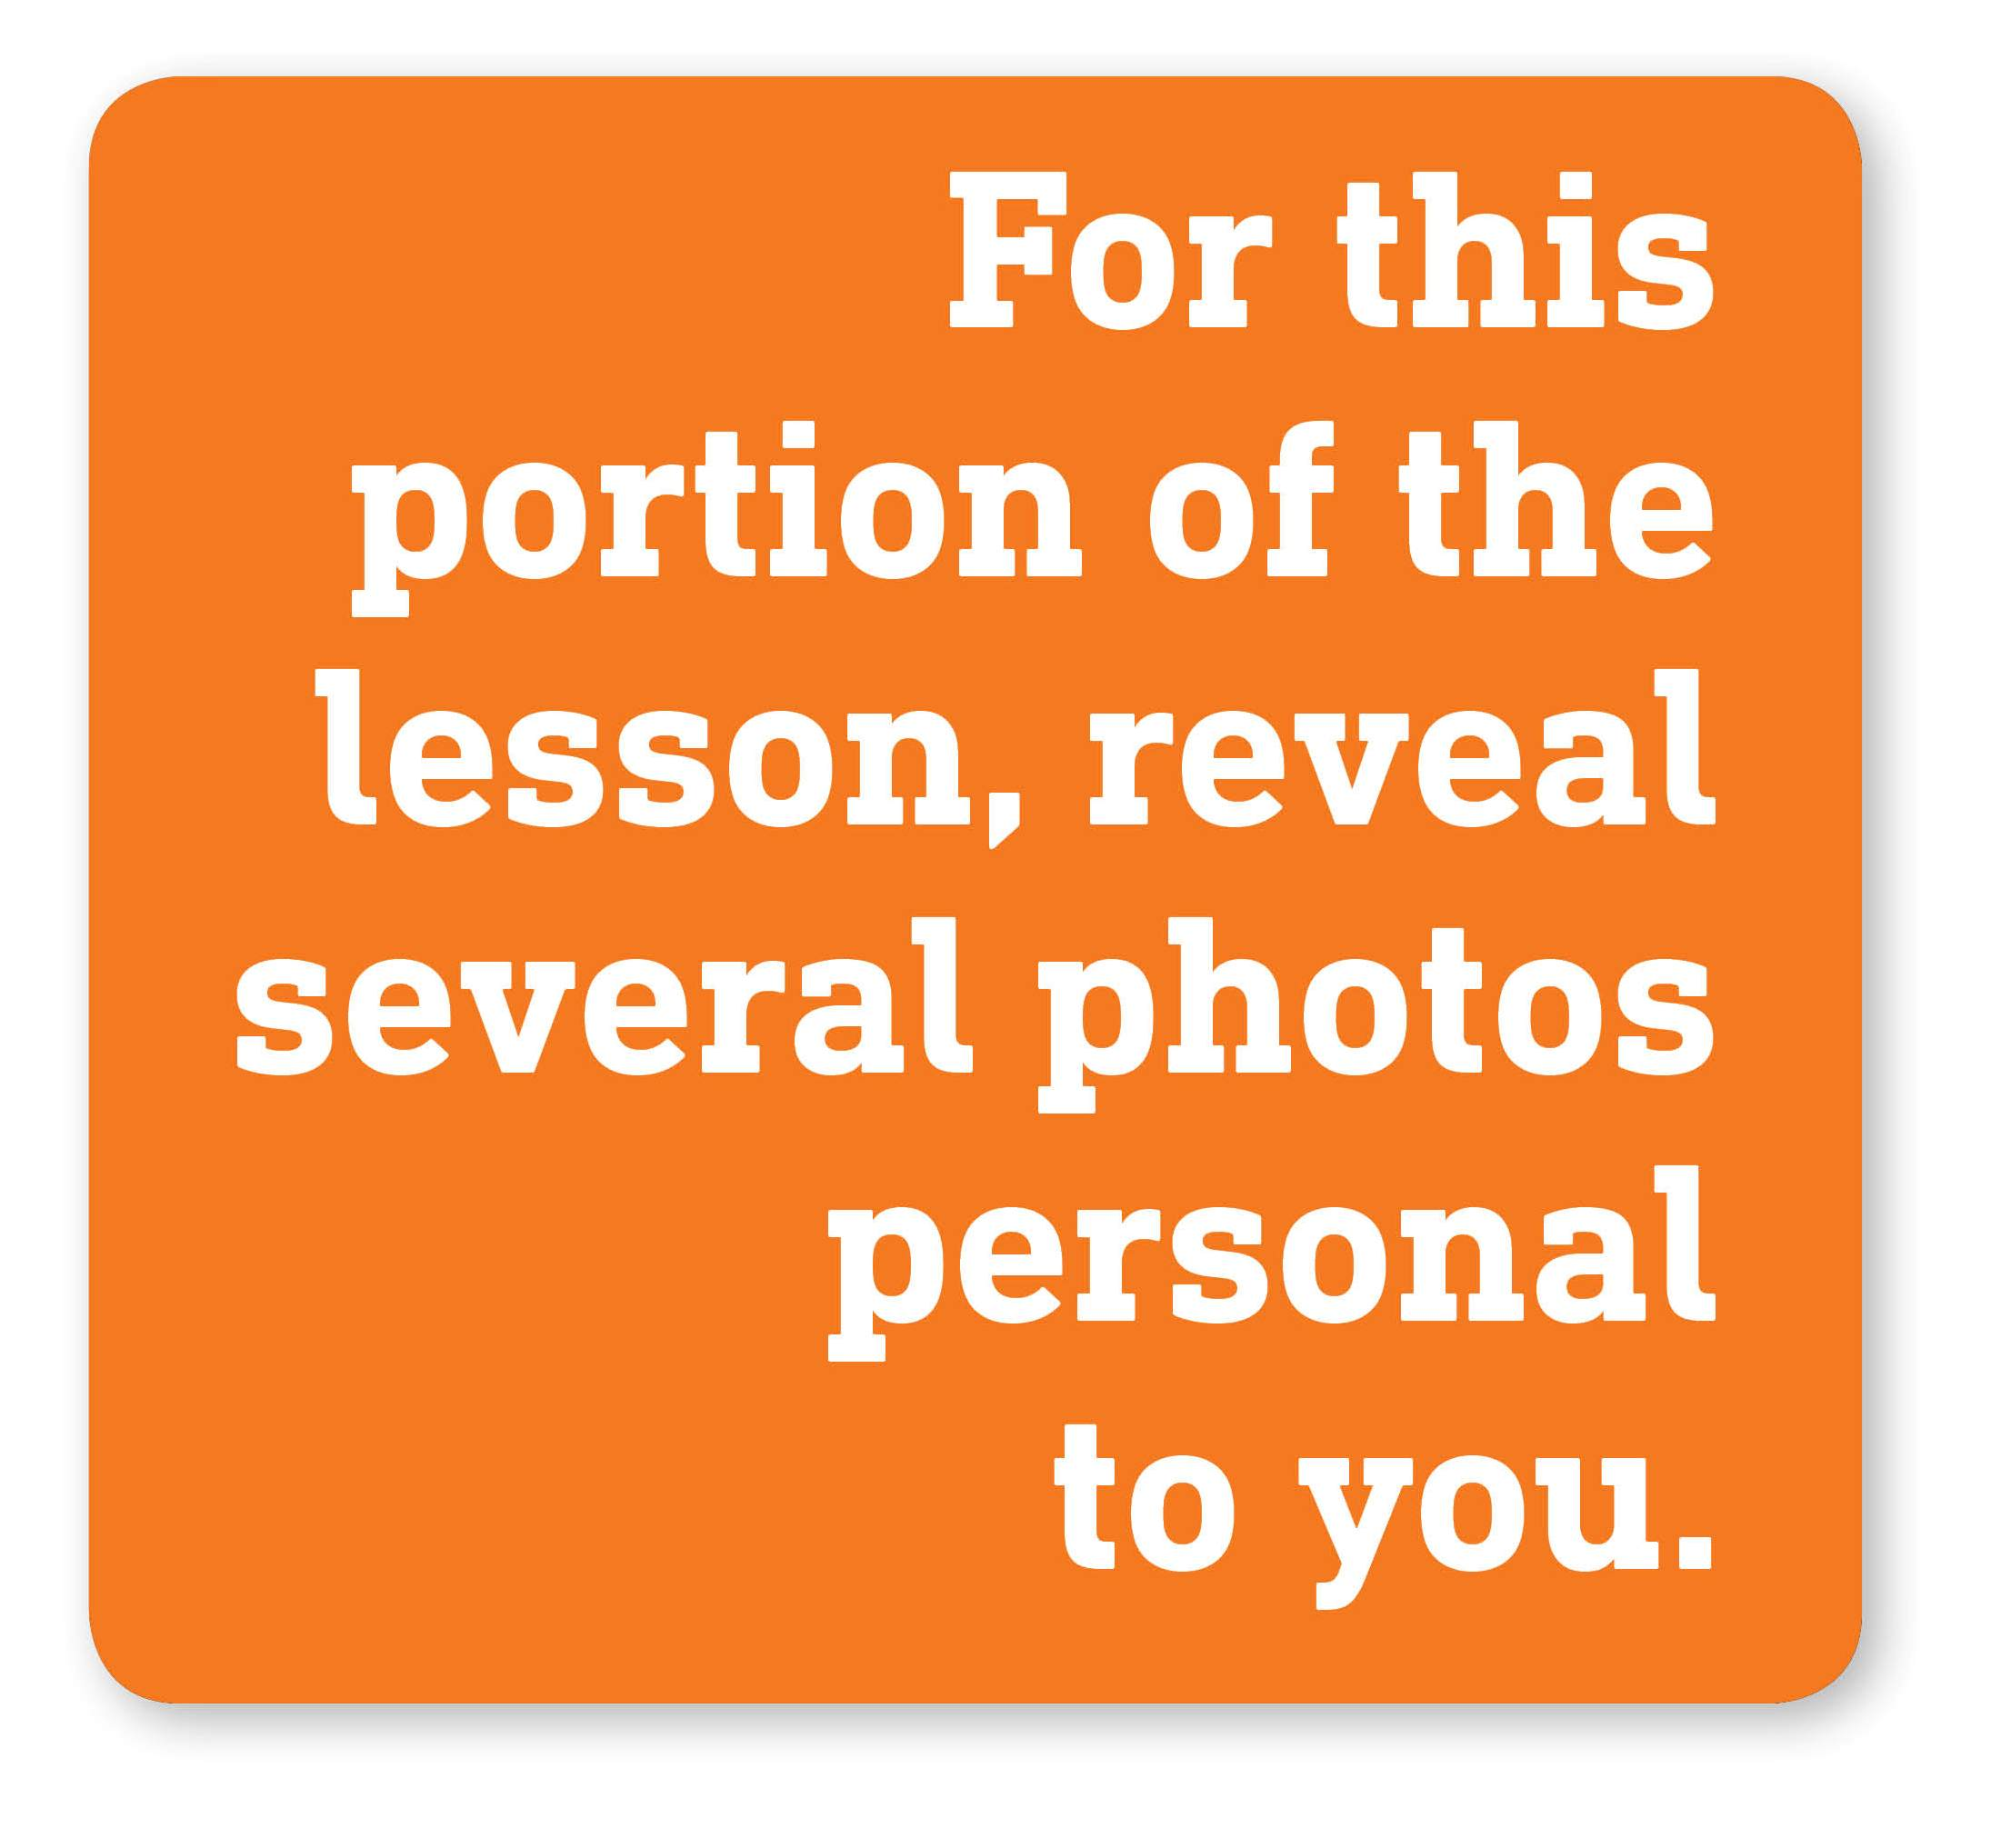 For this portion of the lesson, reveal several photos personal to you.